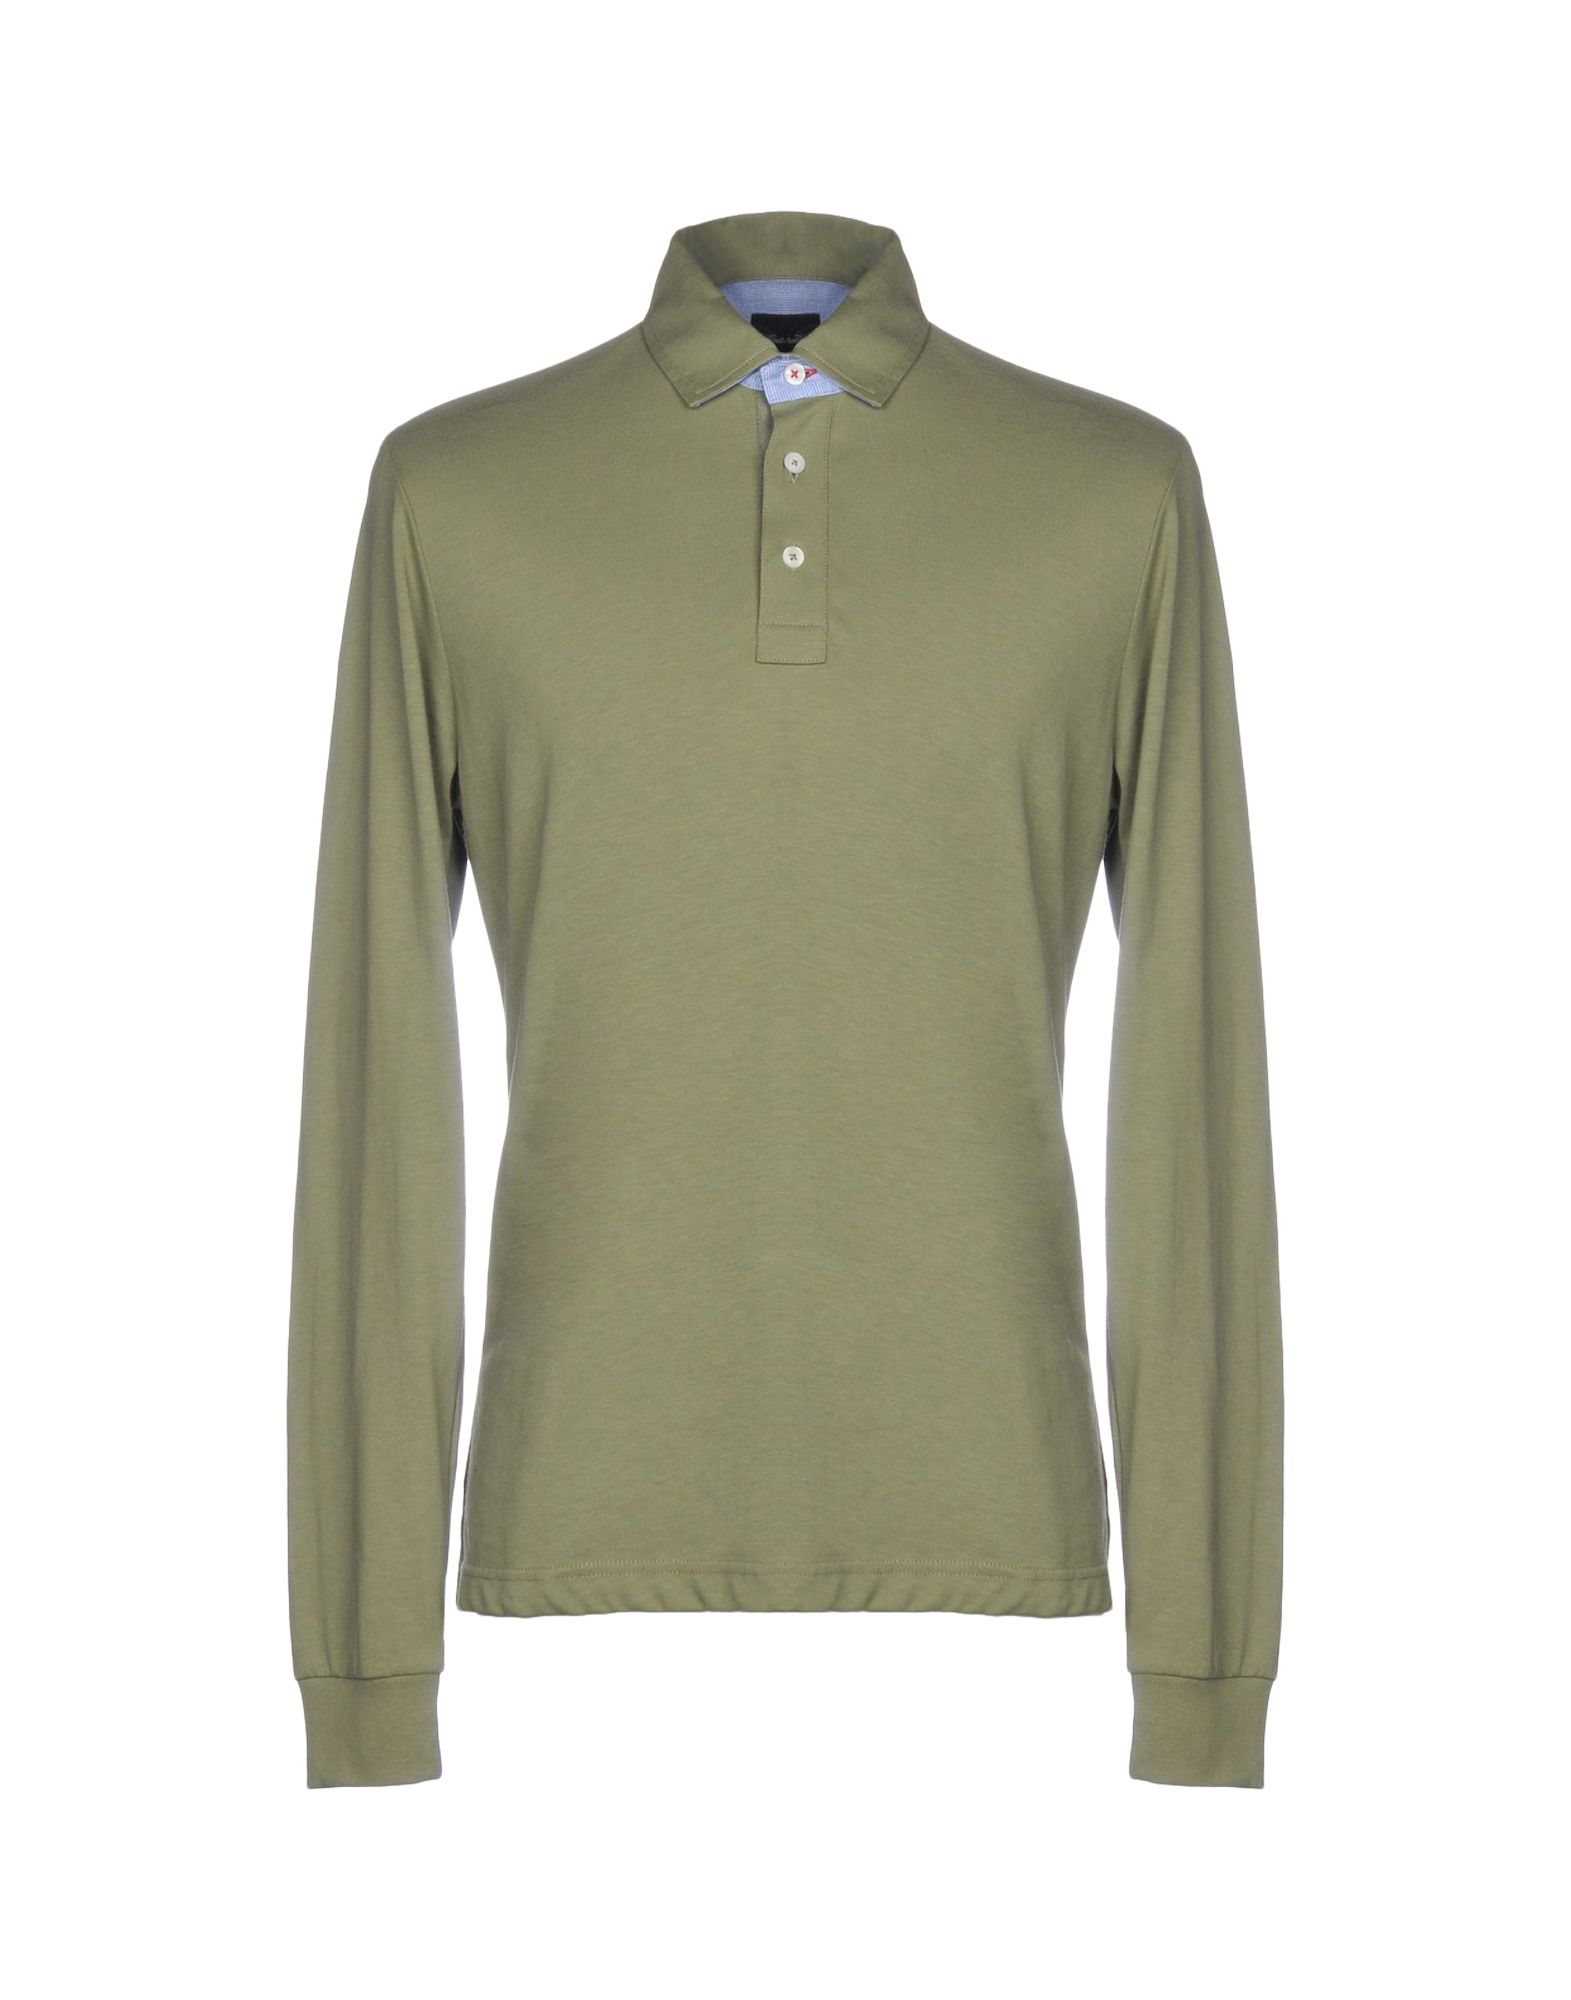 CONTE OF FLORENCE | CONTE OF FLORENCE Polo shirts 12217380 | Goxip